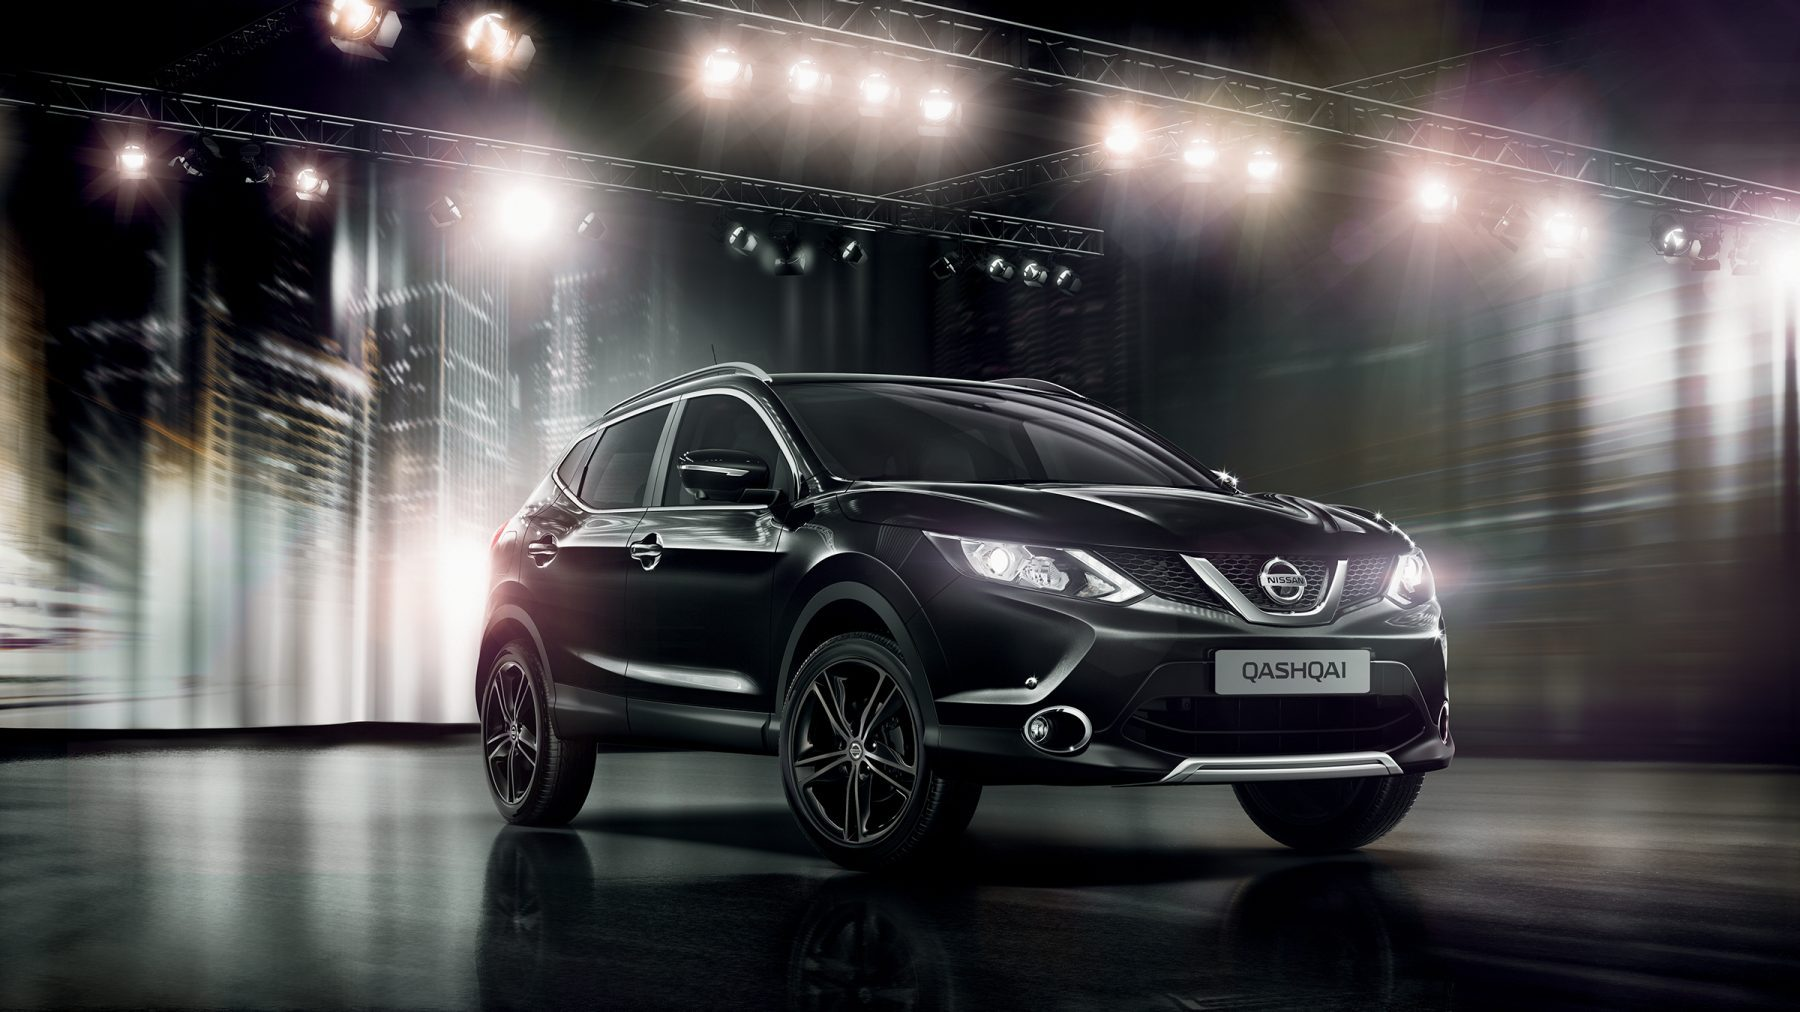 The Qashqai Black Edition's exterior with black alloys and front and rear styling plates.